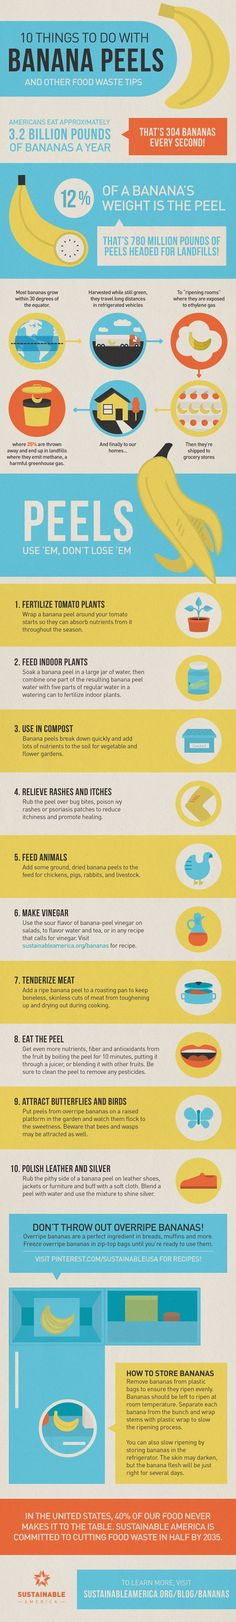 10 Crazy Things To Do With Banana Peels Besides Tripping A Cartoon Character - Great infographic for helping to reduce food waste! Banana Peel Uses, Banana Peels, Estilo Fitness, Food Facts, Things To Know, Crazy Things, Awesome Things, Sustainable Living, Good To Know